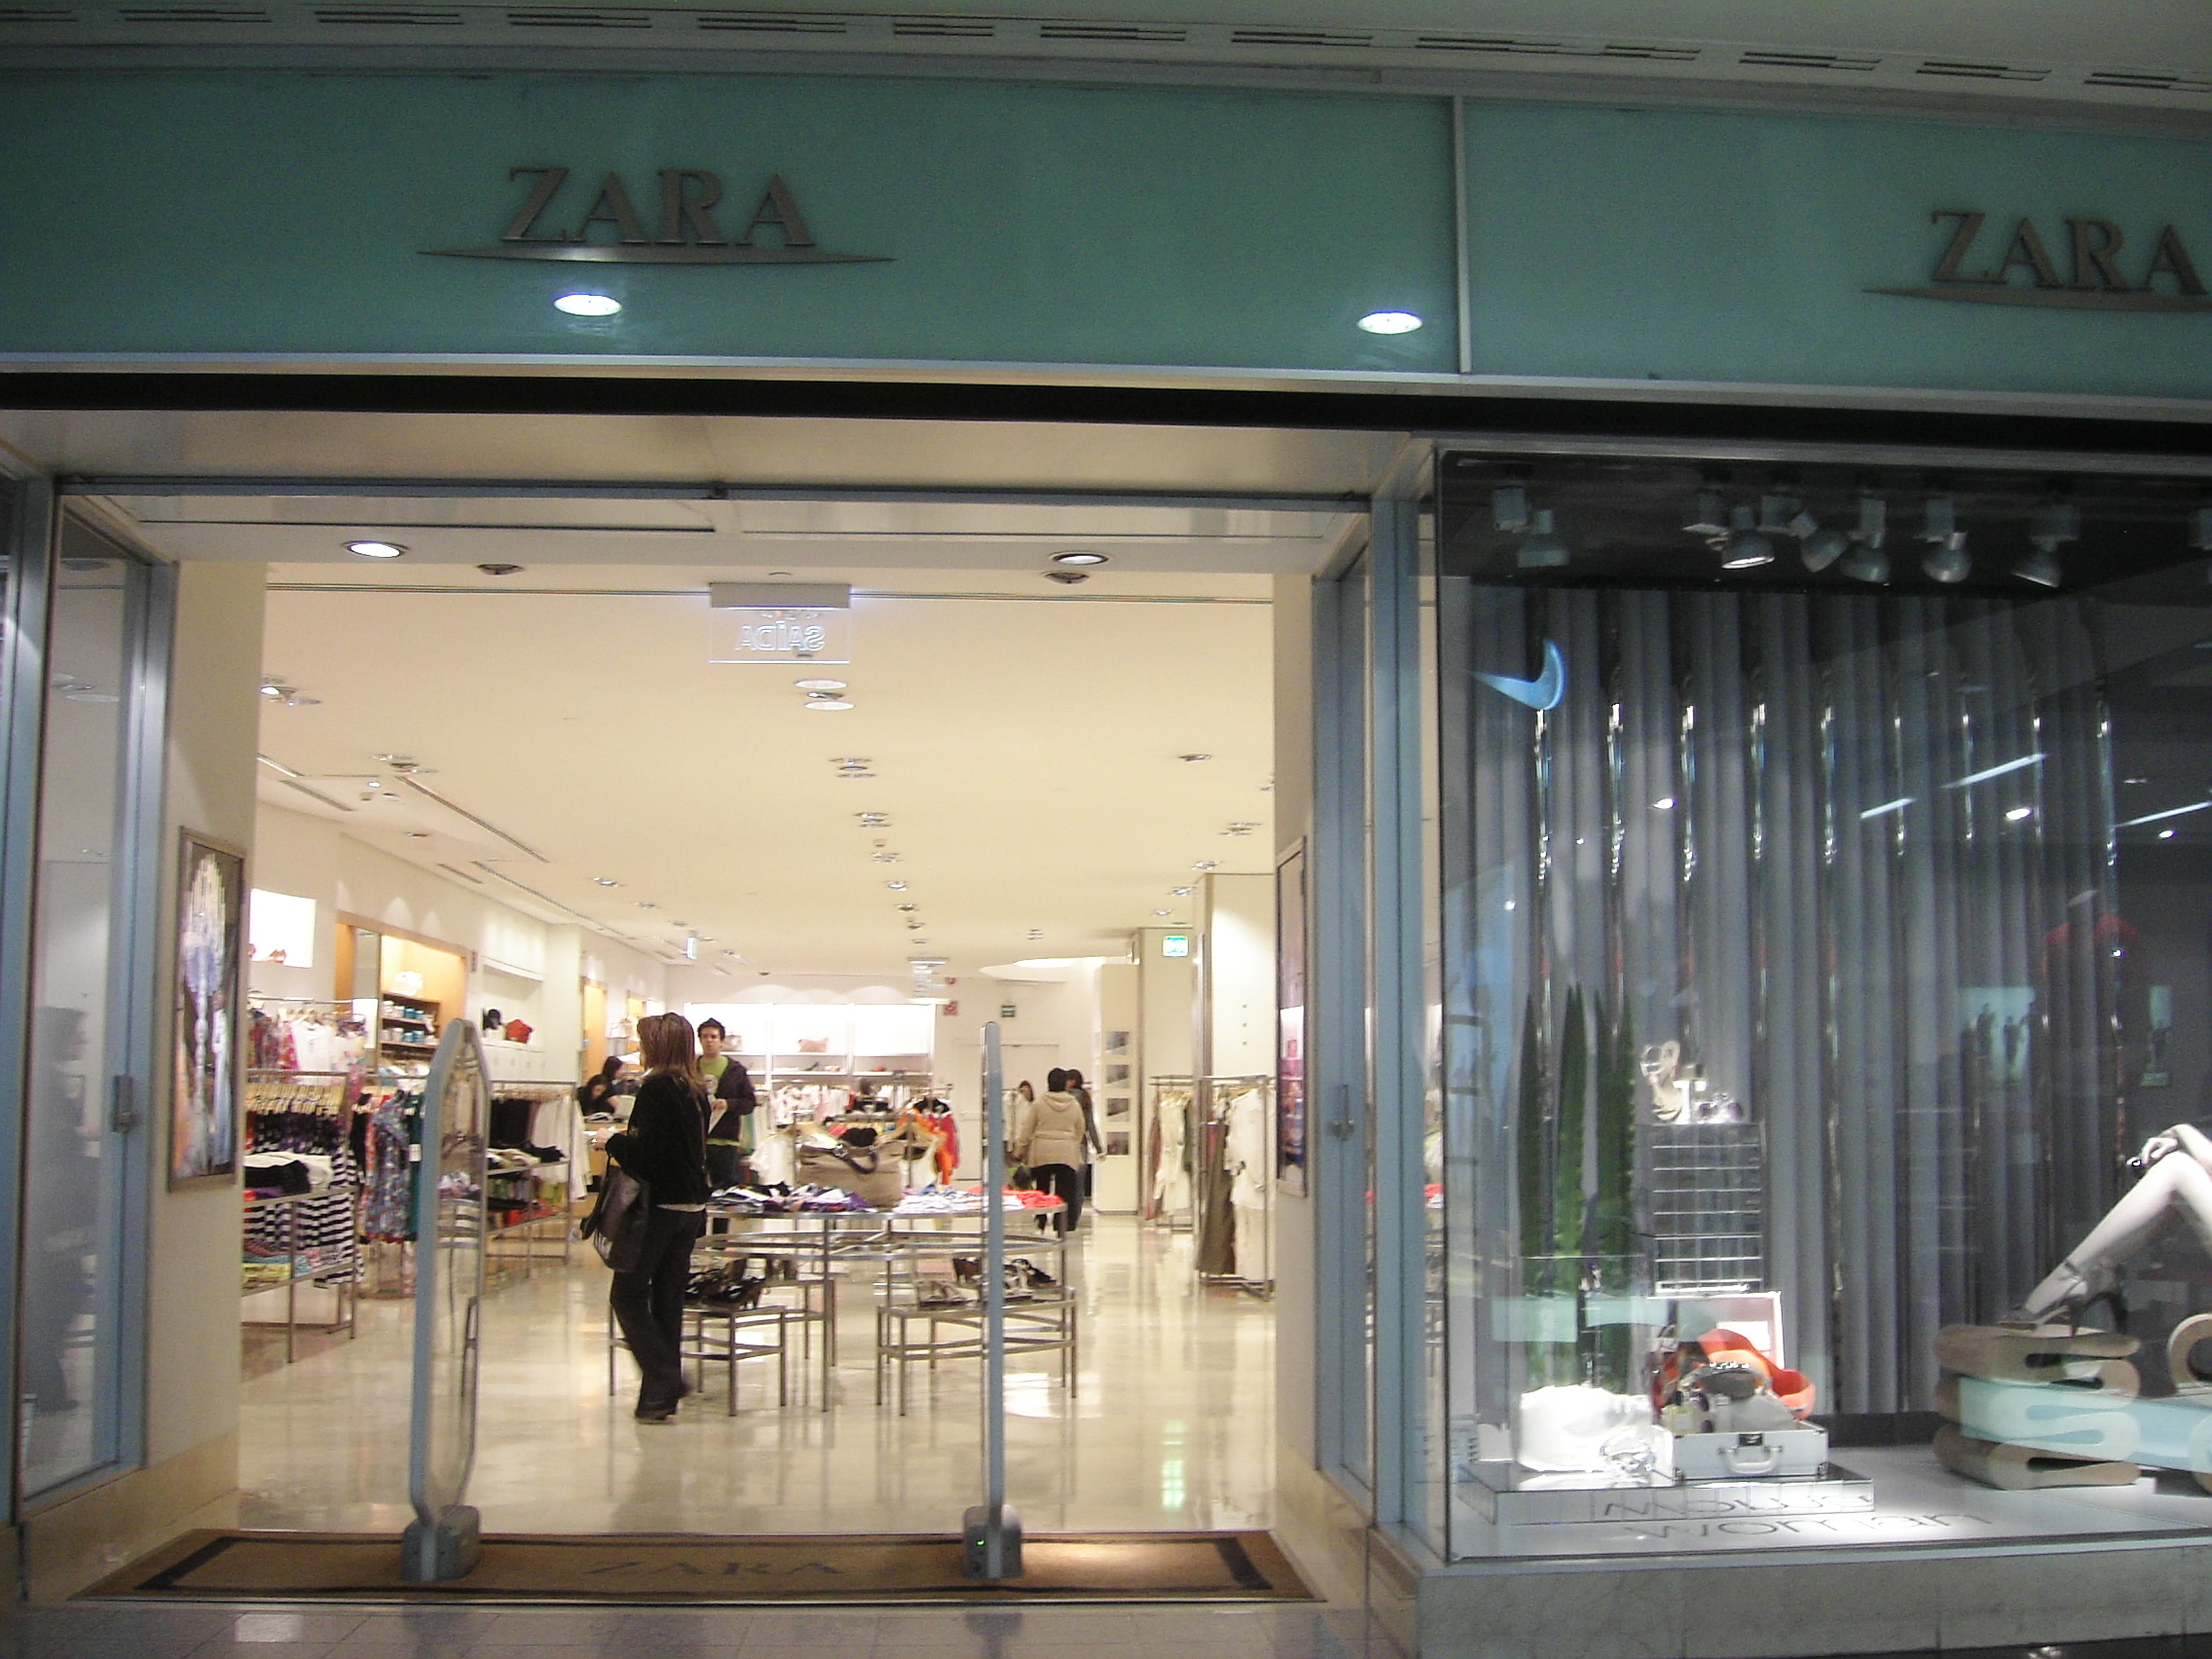 Retailers in UK, Zara